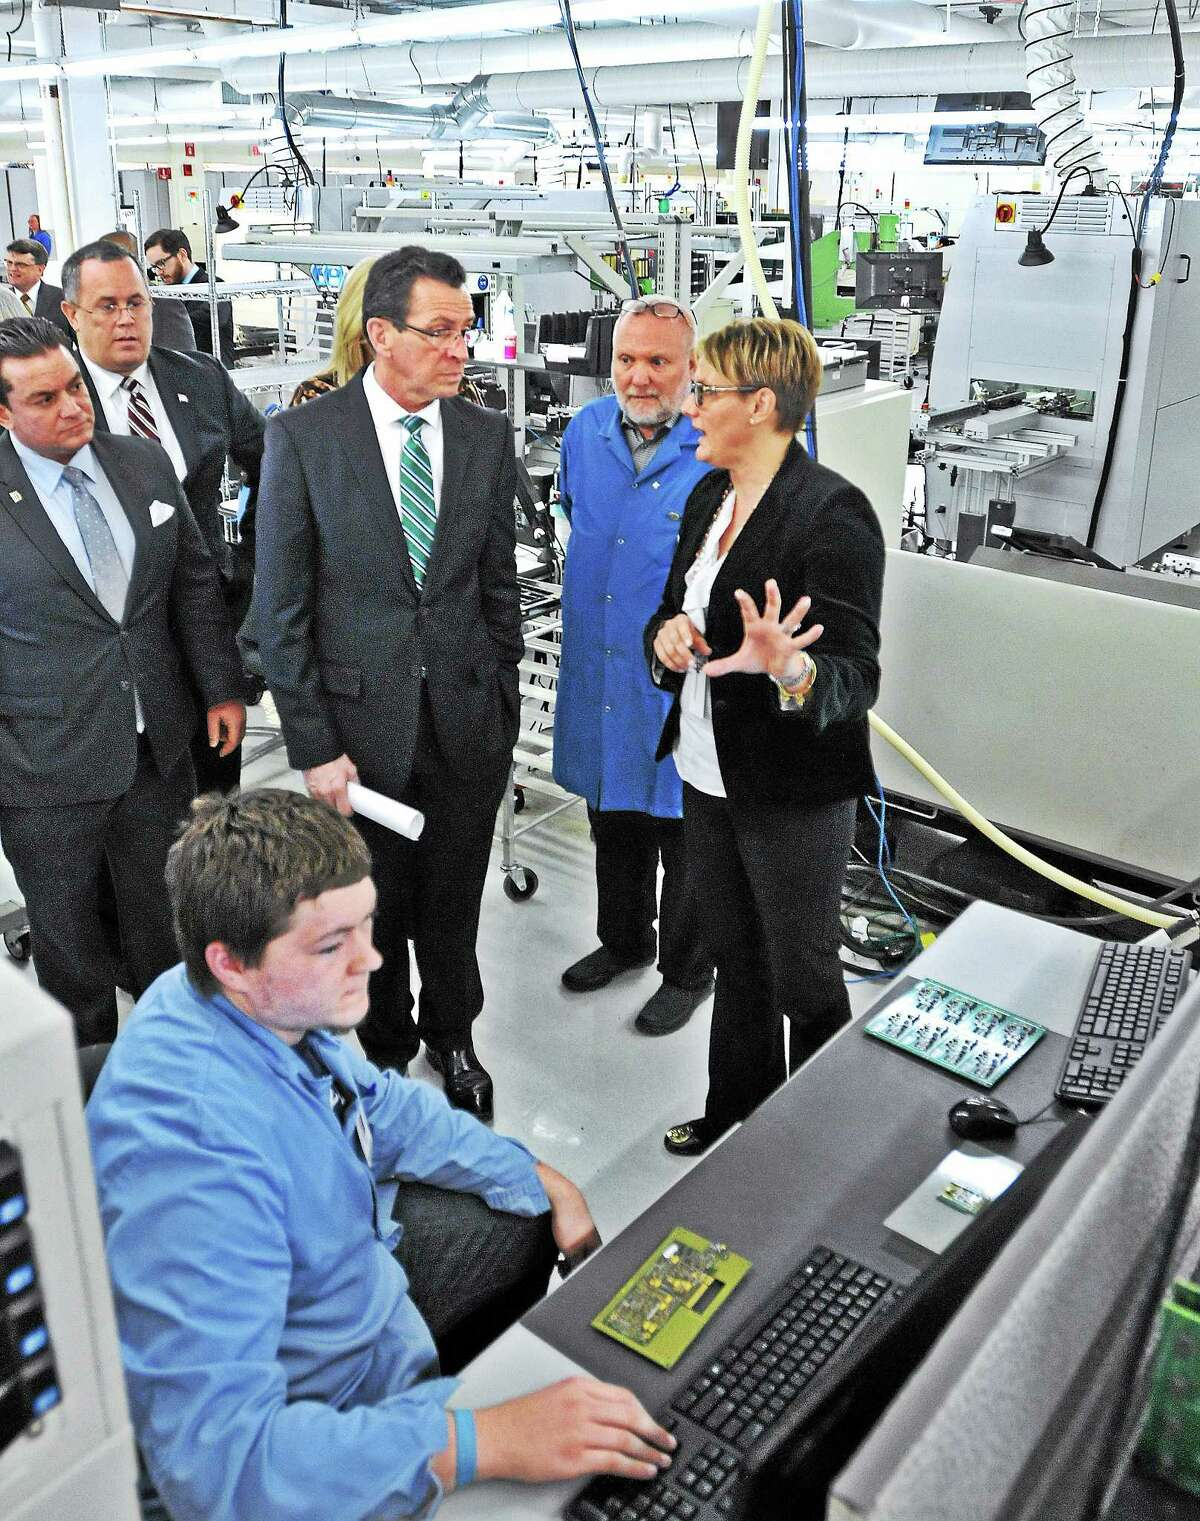 (Peter Casolino-New Haven Register) Governor Dannel P. Malloy gets a tour of Microboard Processing, Inc.(MPI) from the company president Nicole Russo, right, and CEO Craig Hoekenga, second from right. Malloy was at the company to celebrate the state's Small Business Express Program (EXP). MPI is the 1,000th state company that has received assistance through the program. MPI is located in Seymour. March 10, 2014. pcasolino@NewHavenRegister